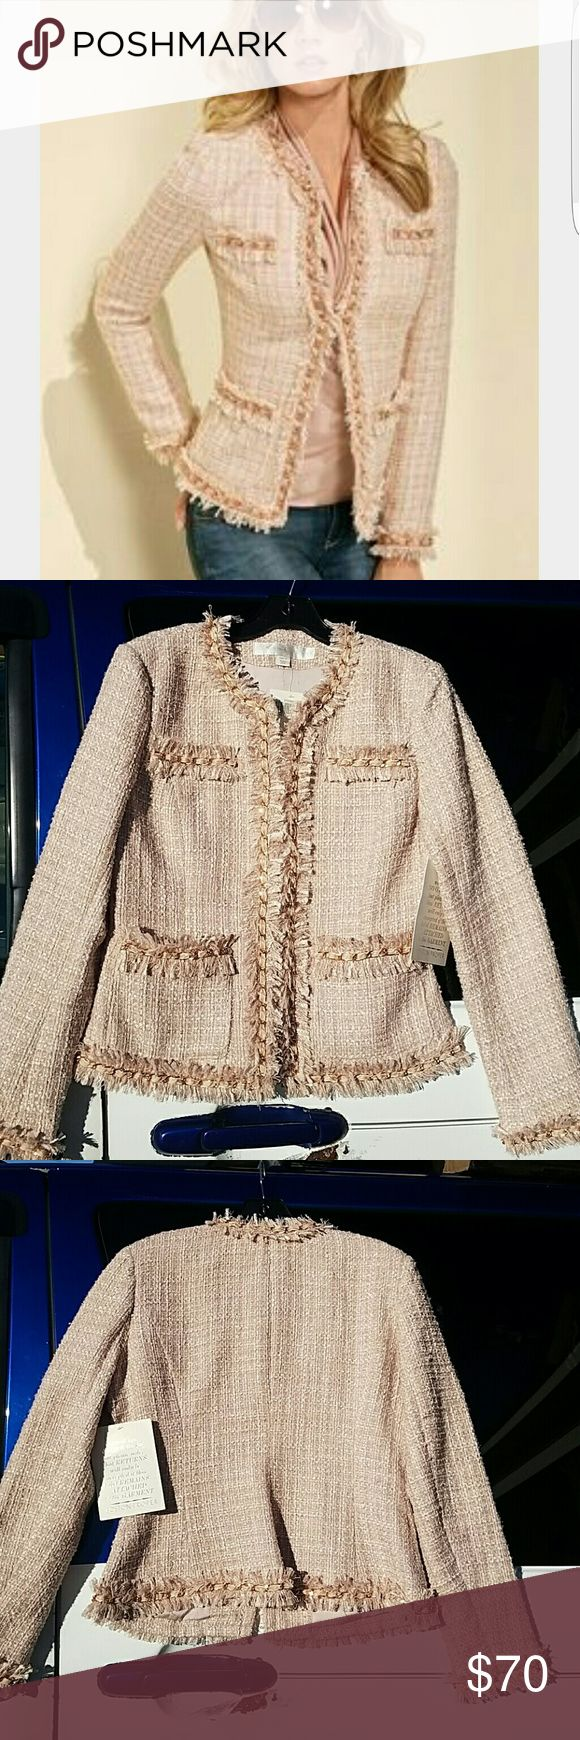 Parisian Jacket Rose Gold Best selling iconic jacket with fringed hems, chain piping and allover shimmer. Seamed for shaping with true front pocket Hook and eye closure. Polyester/wool, imported, dry clean, Sensuously shaped. Rose Gold Boston Proper Jackets & Coats